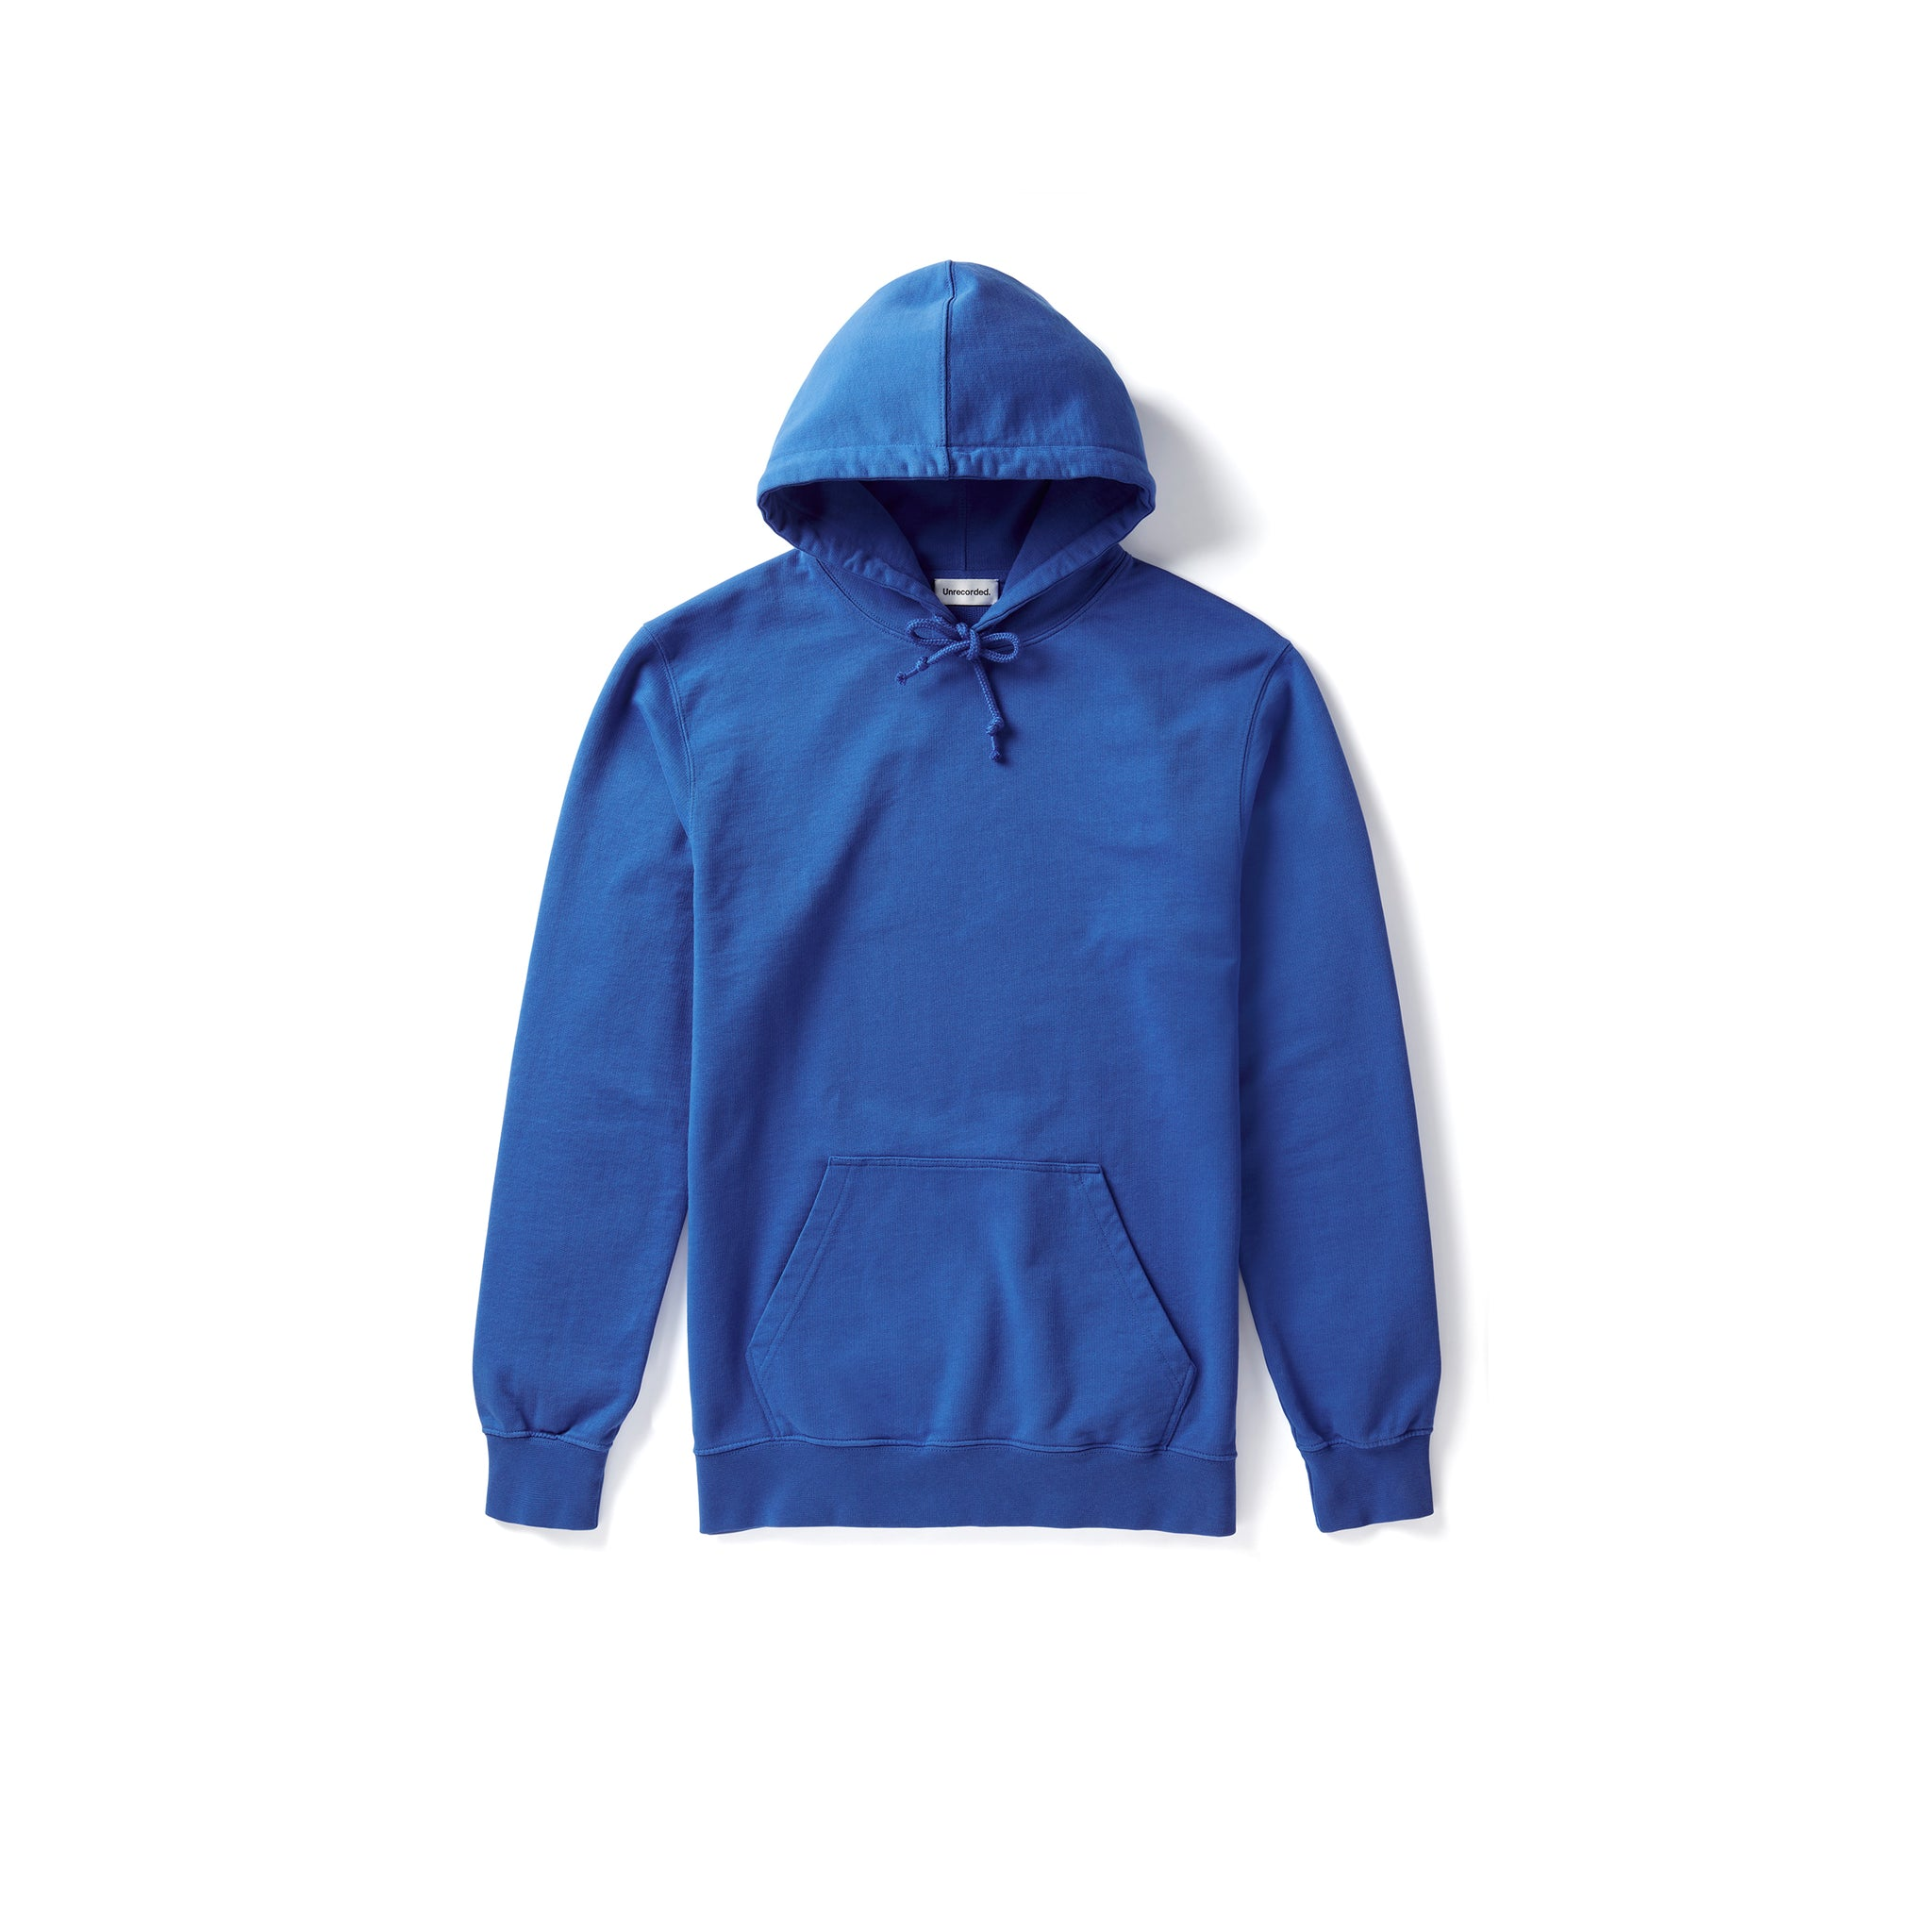 Hoodie Blue - Unrecorded